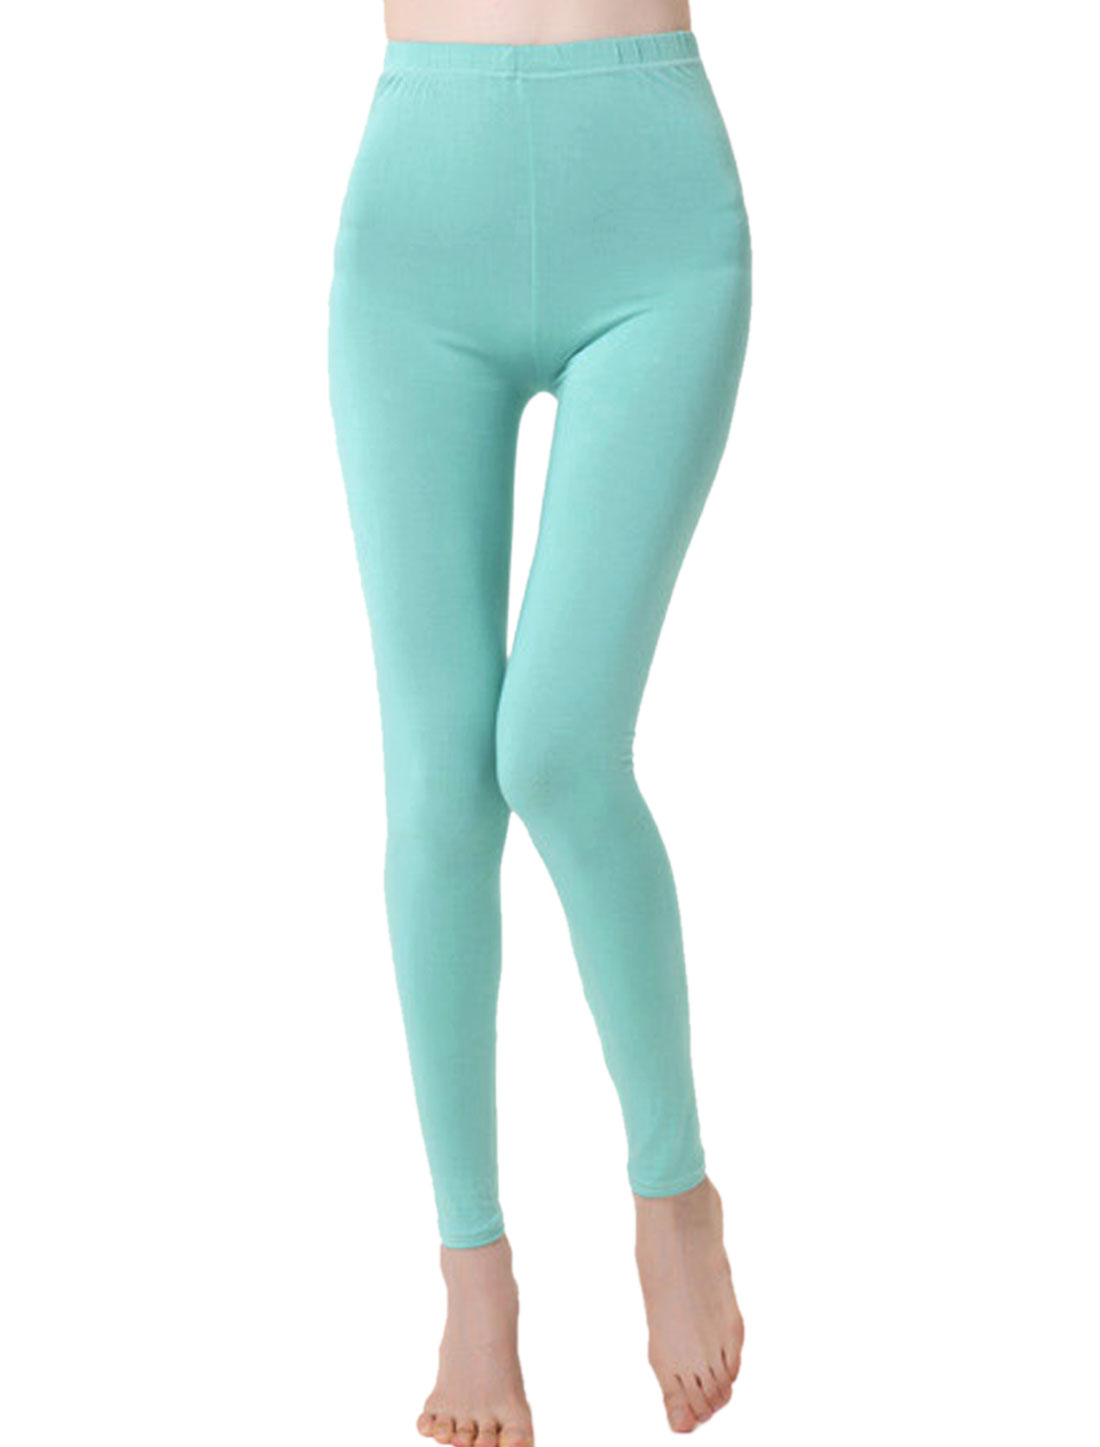 Women Slim Fit Mid Rise Elastic Waist Full Length Leggings Aqua XS